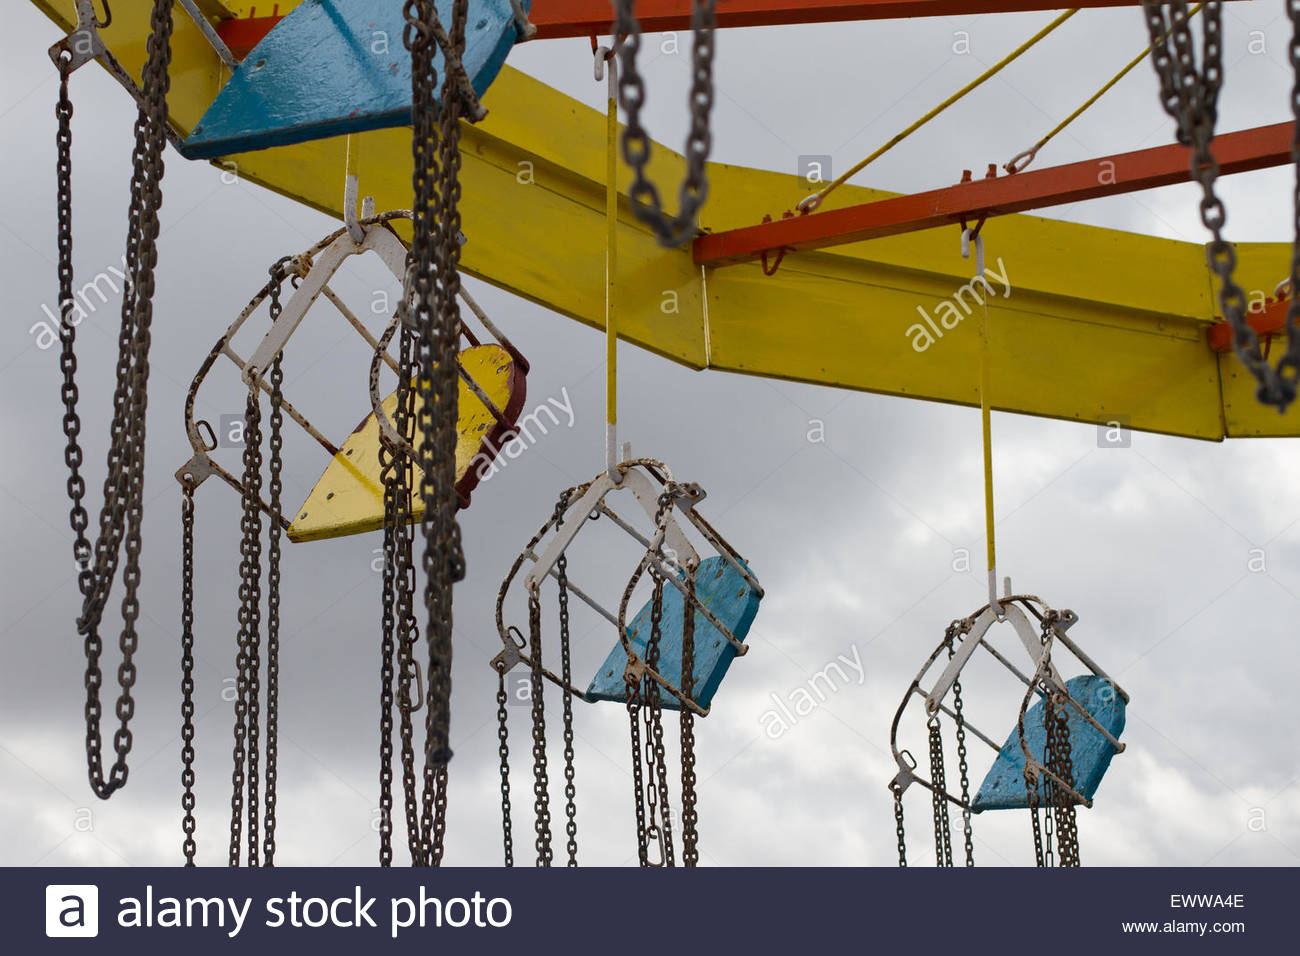 Old rusting swing ride on an Abandoned Amusement Park in the East of England of Cleethorpes - Stock Image